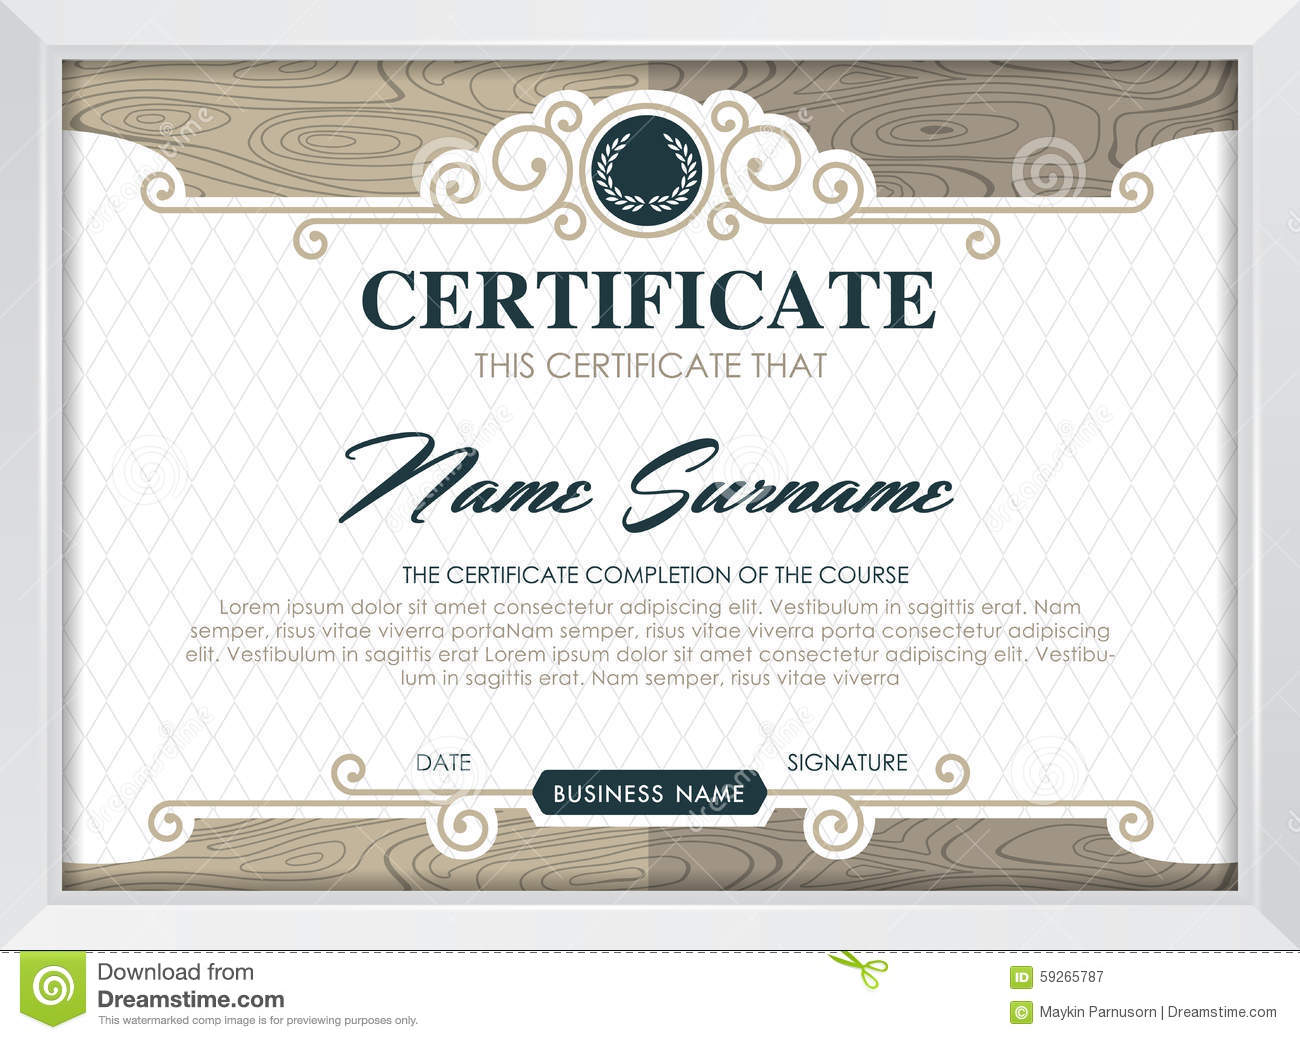 Free blank certificate templates image collections templates free certificate template no border image collections free blank certificate templates gallery templates example free blank yelopaper Images